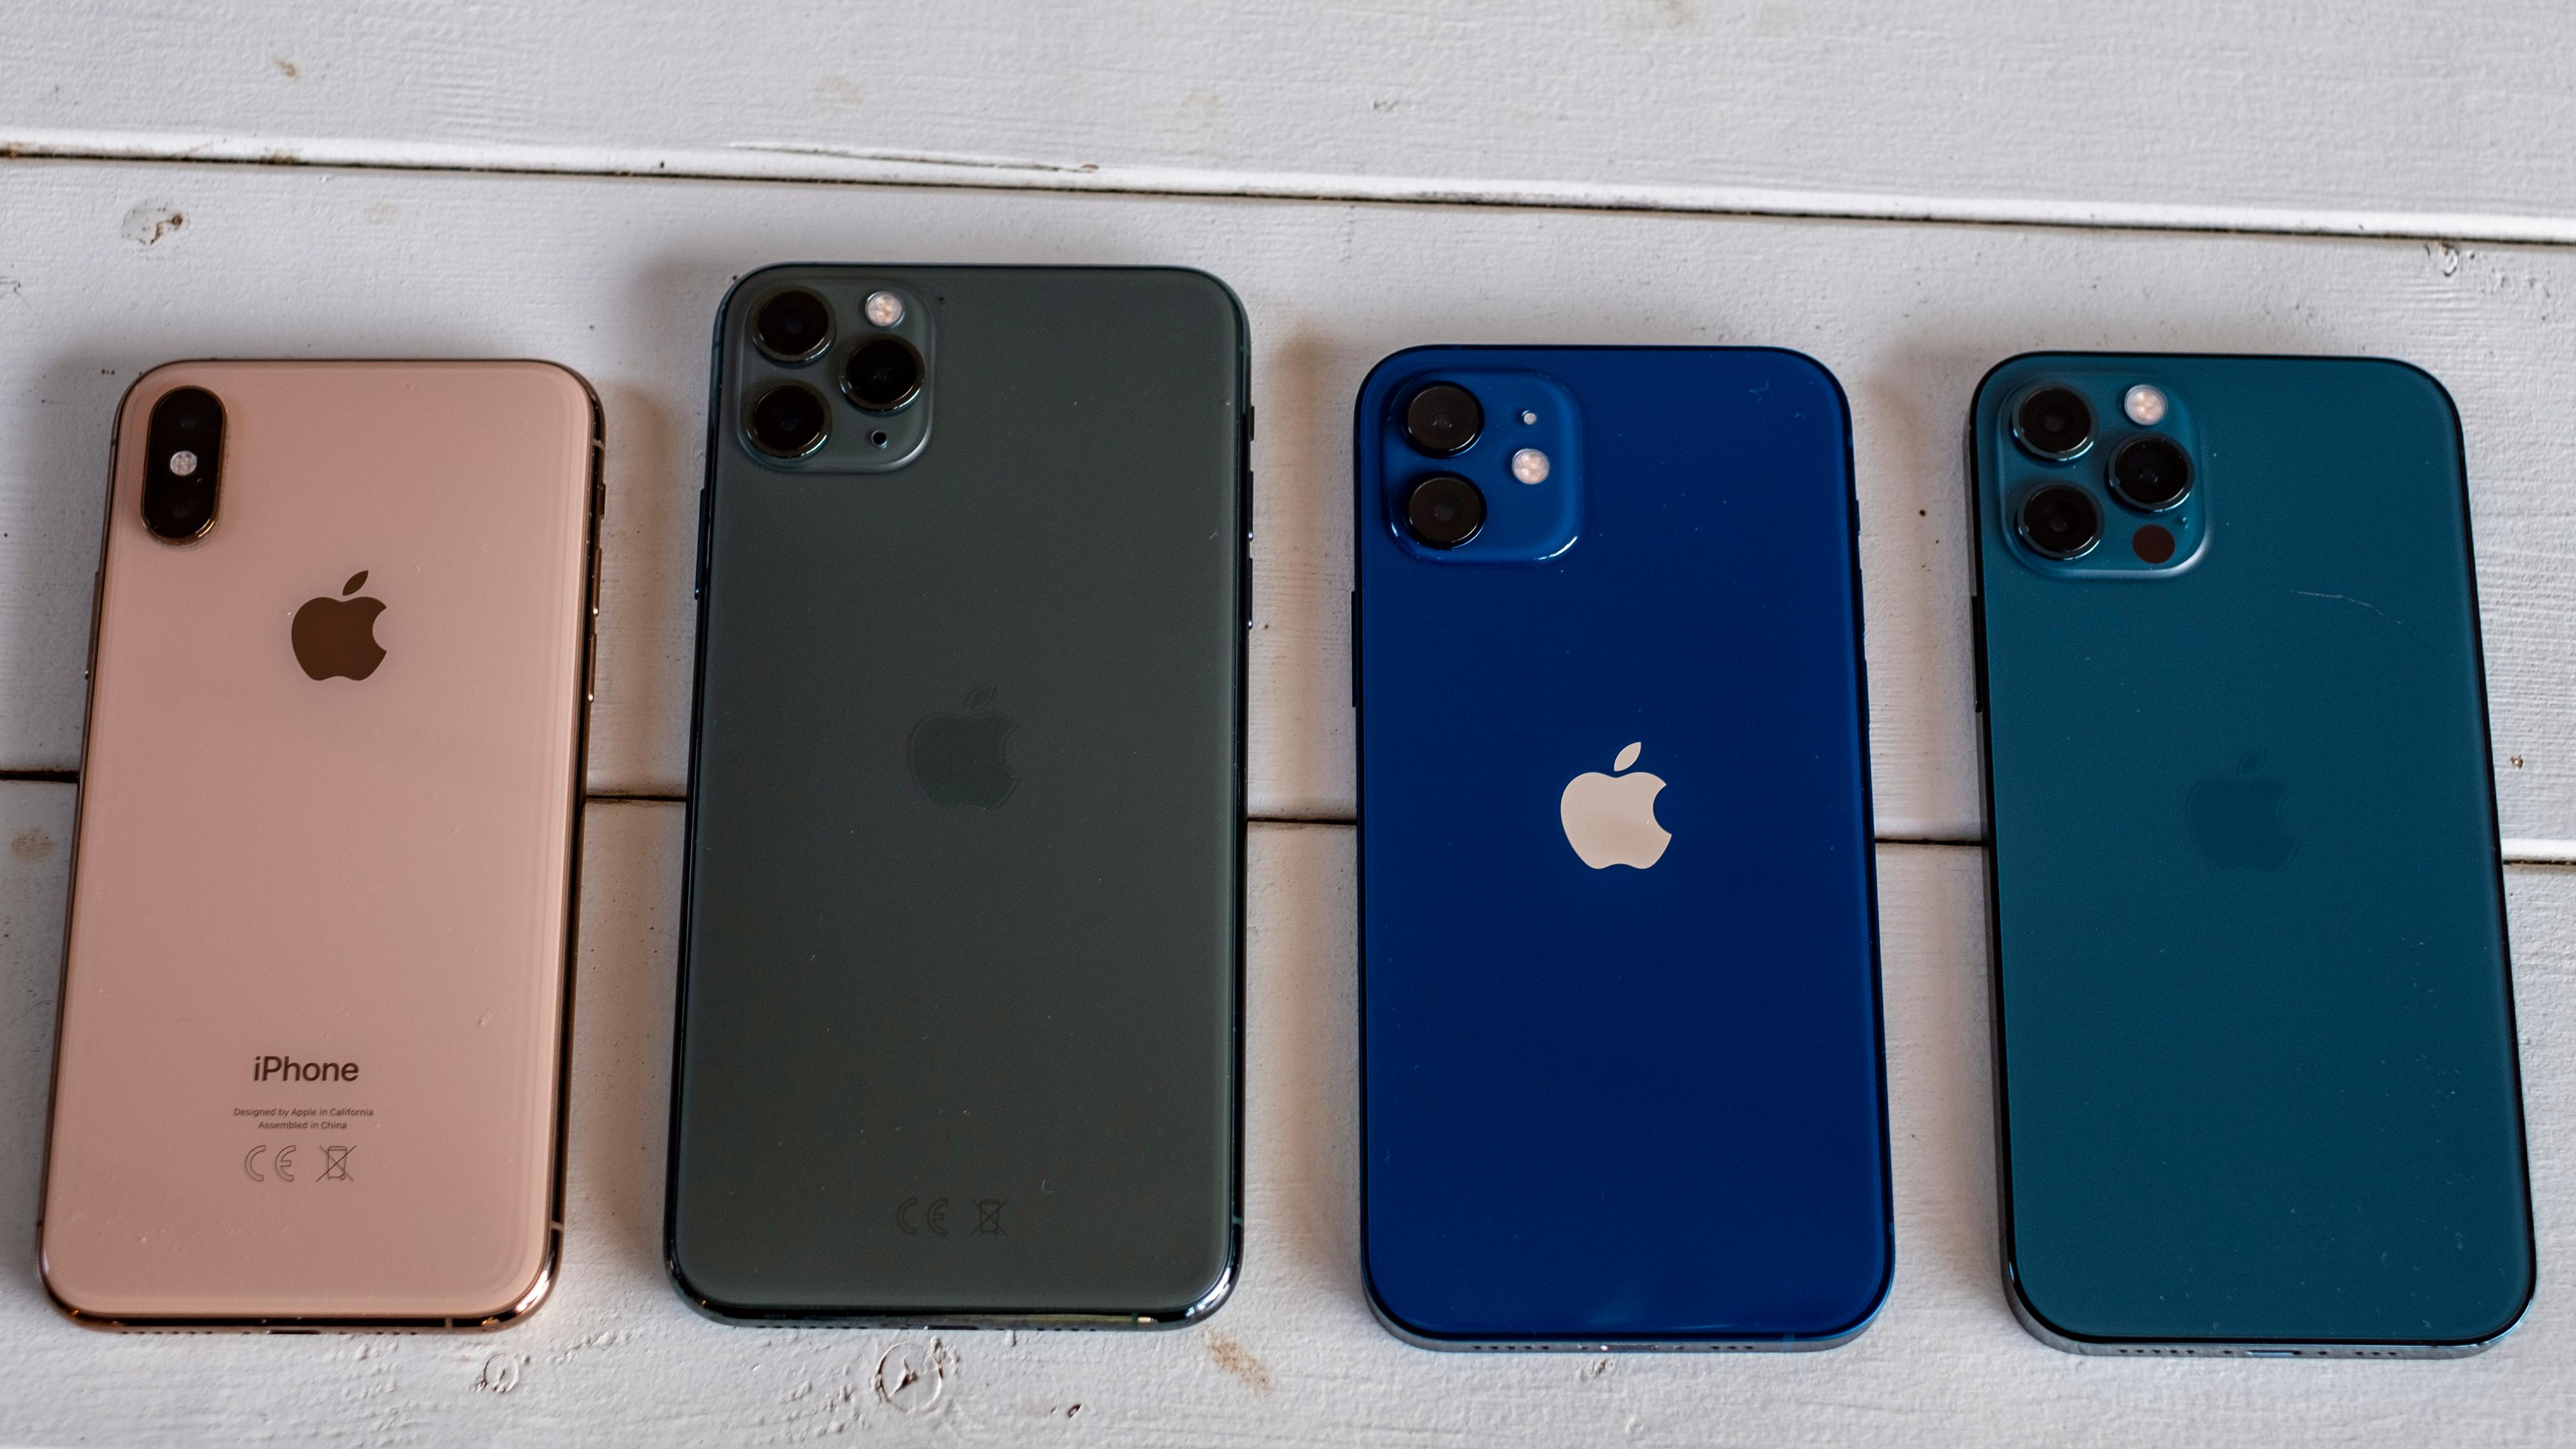 Fra venstre: iPhone Xs, iPhone 11 Pro, iPhone 12 og iPhone 12 Pro.